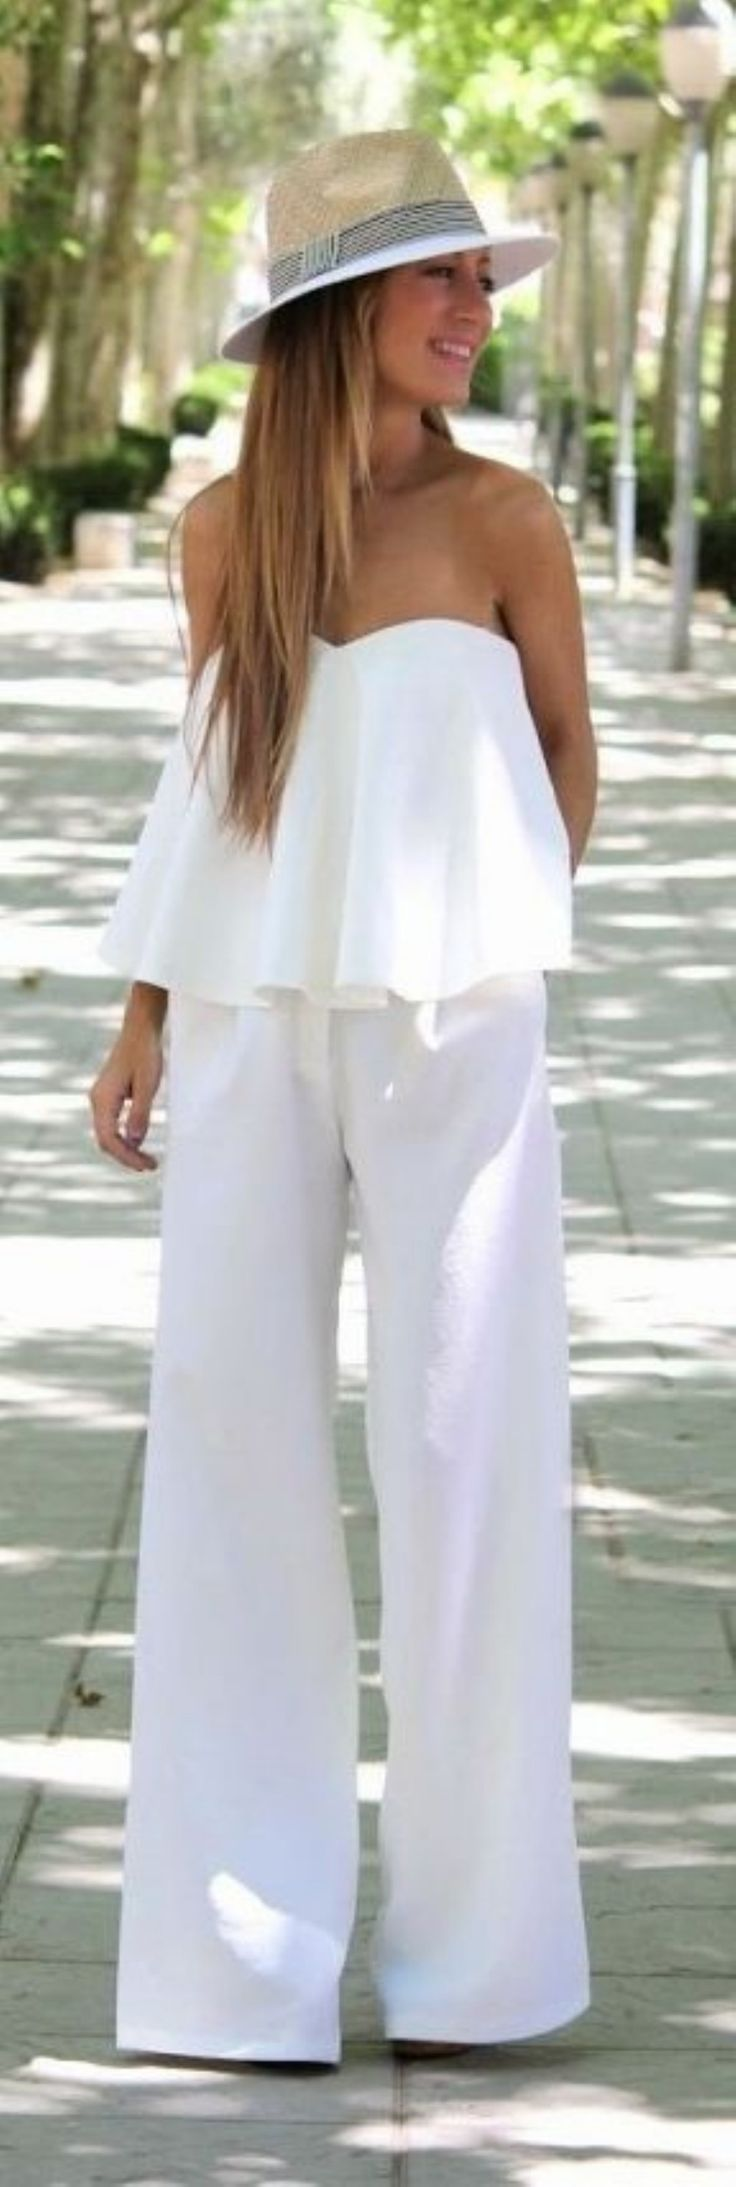 Stunning Perfect White Linen Pants Outfit For Summer and Spring from http://www.fashionetter.com/2017/04/17/perfect-white-linen-pants-outfit-summer-spring/